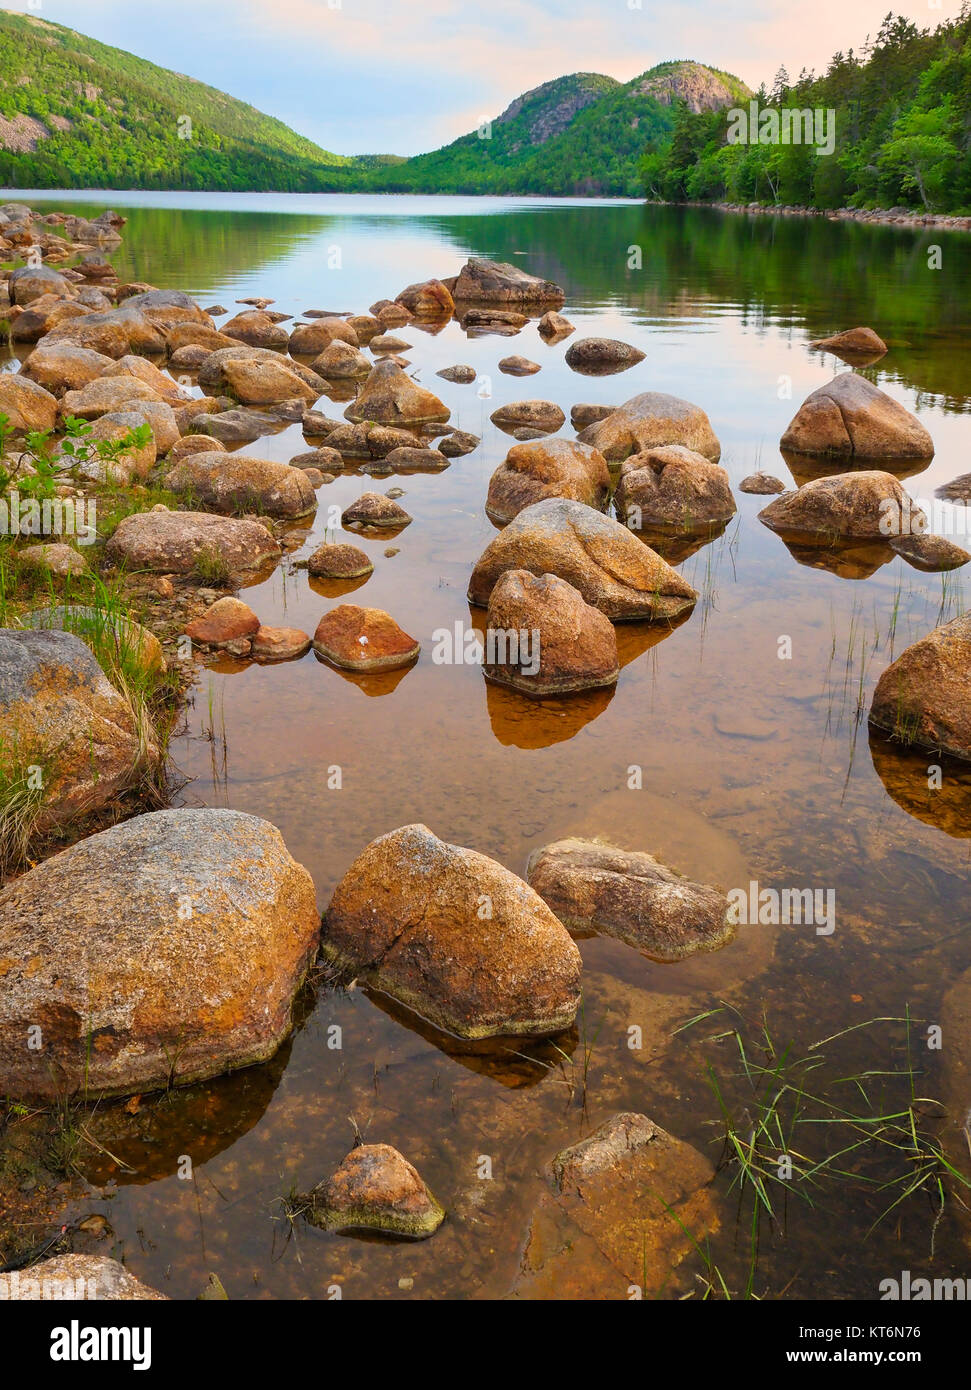 Jordan Pond Shore Trail, Acadia National Park, Mount Desert Island, Maine, USA - Stock Image